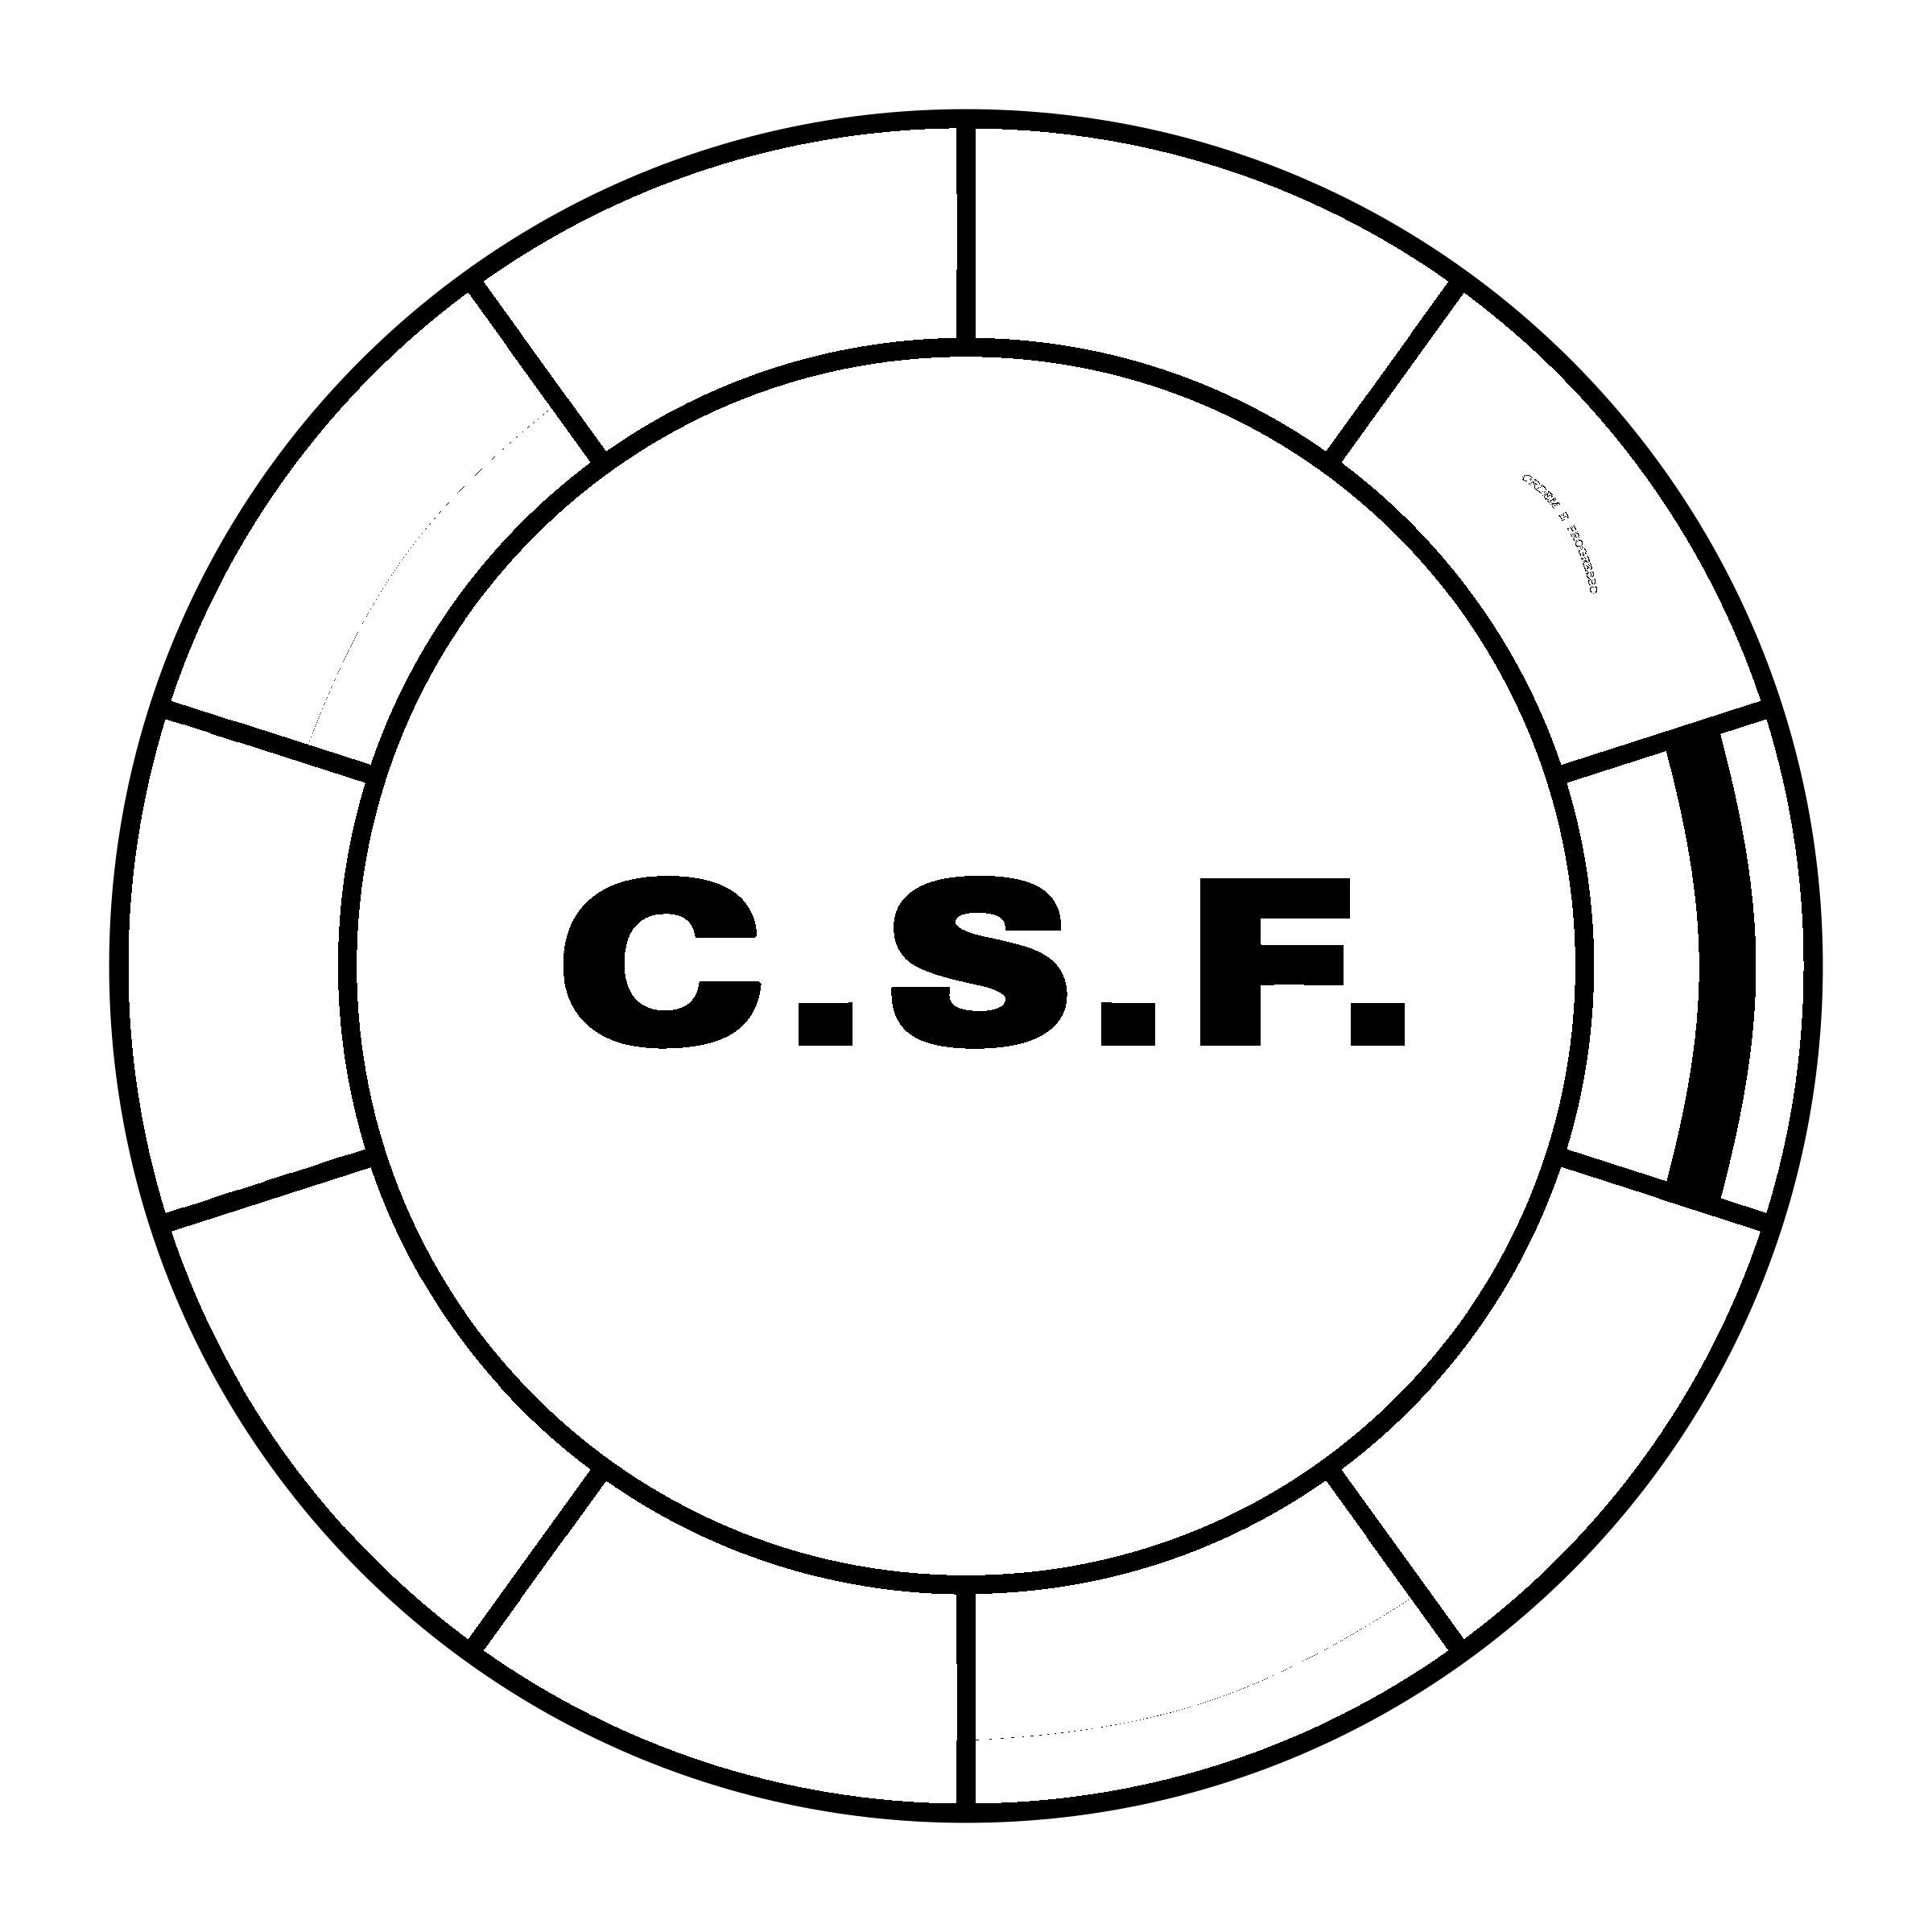 CSF Logo PNG Transparent & SVG Vector.